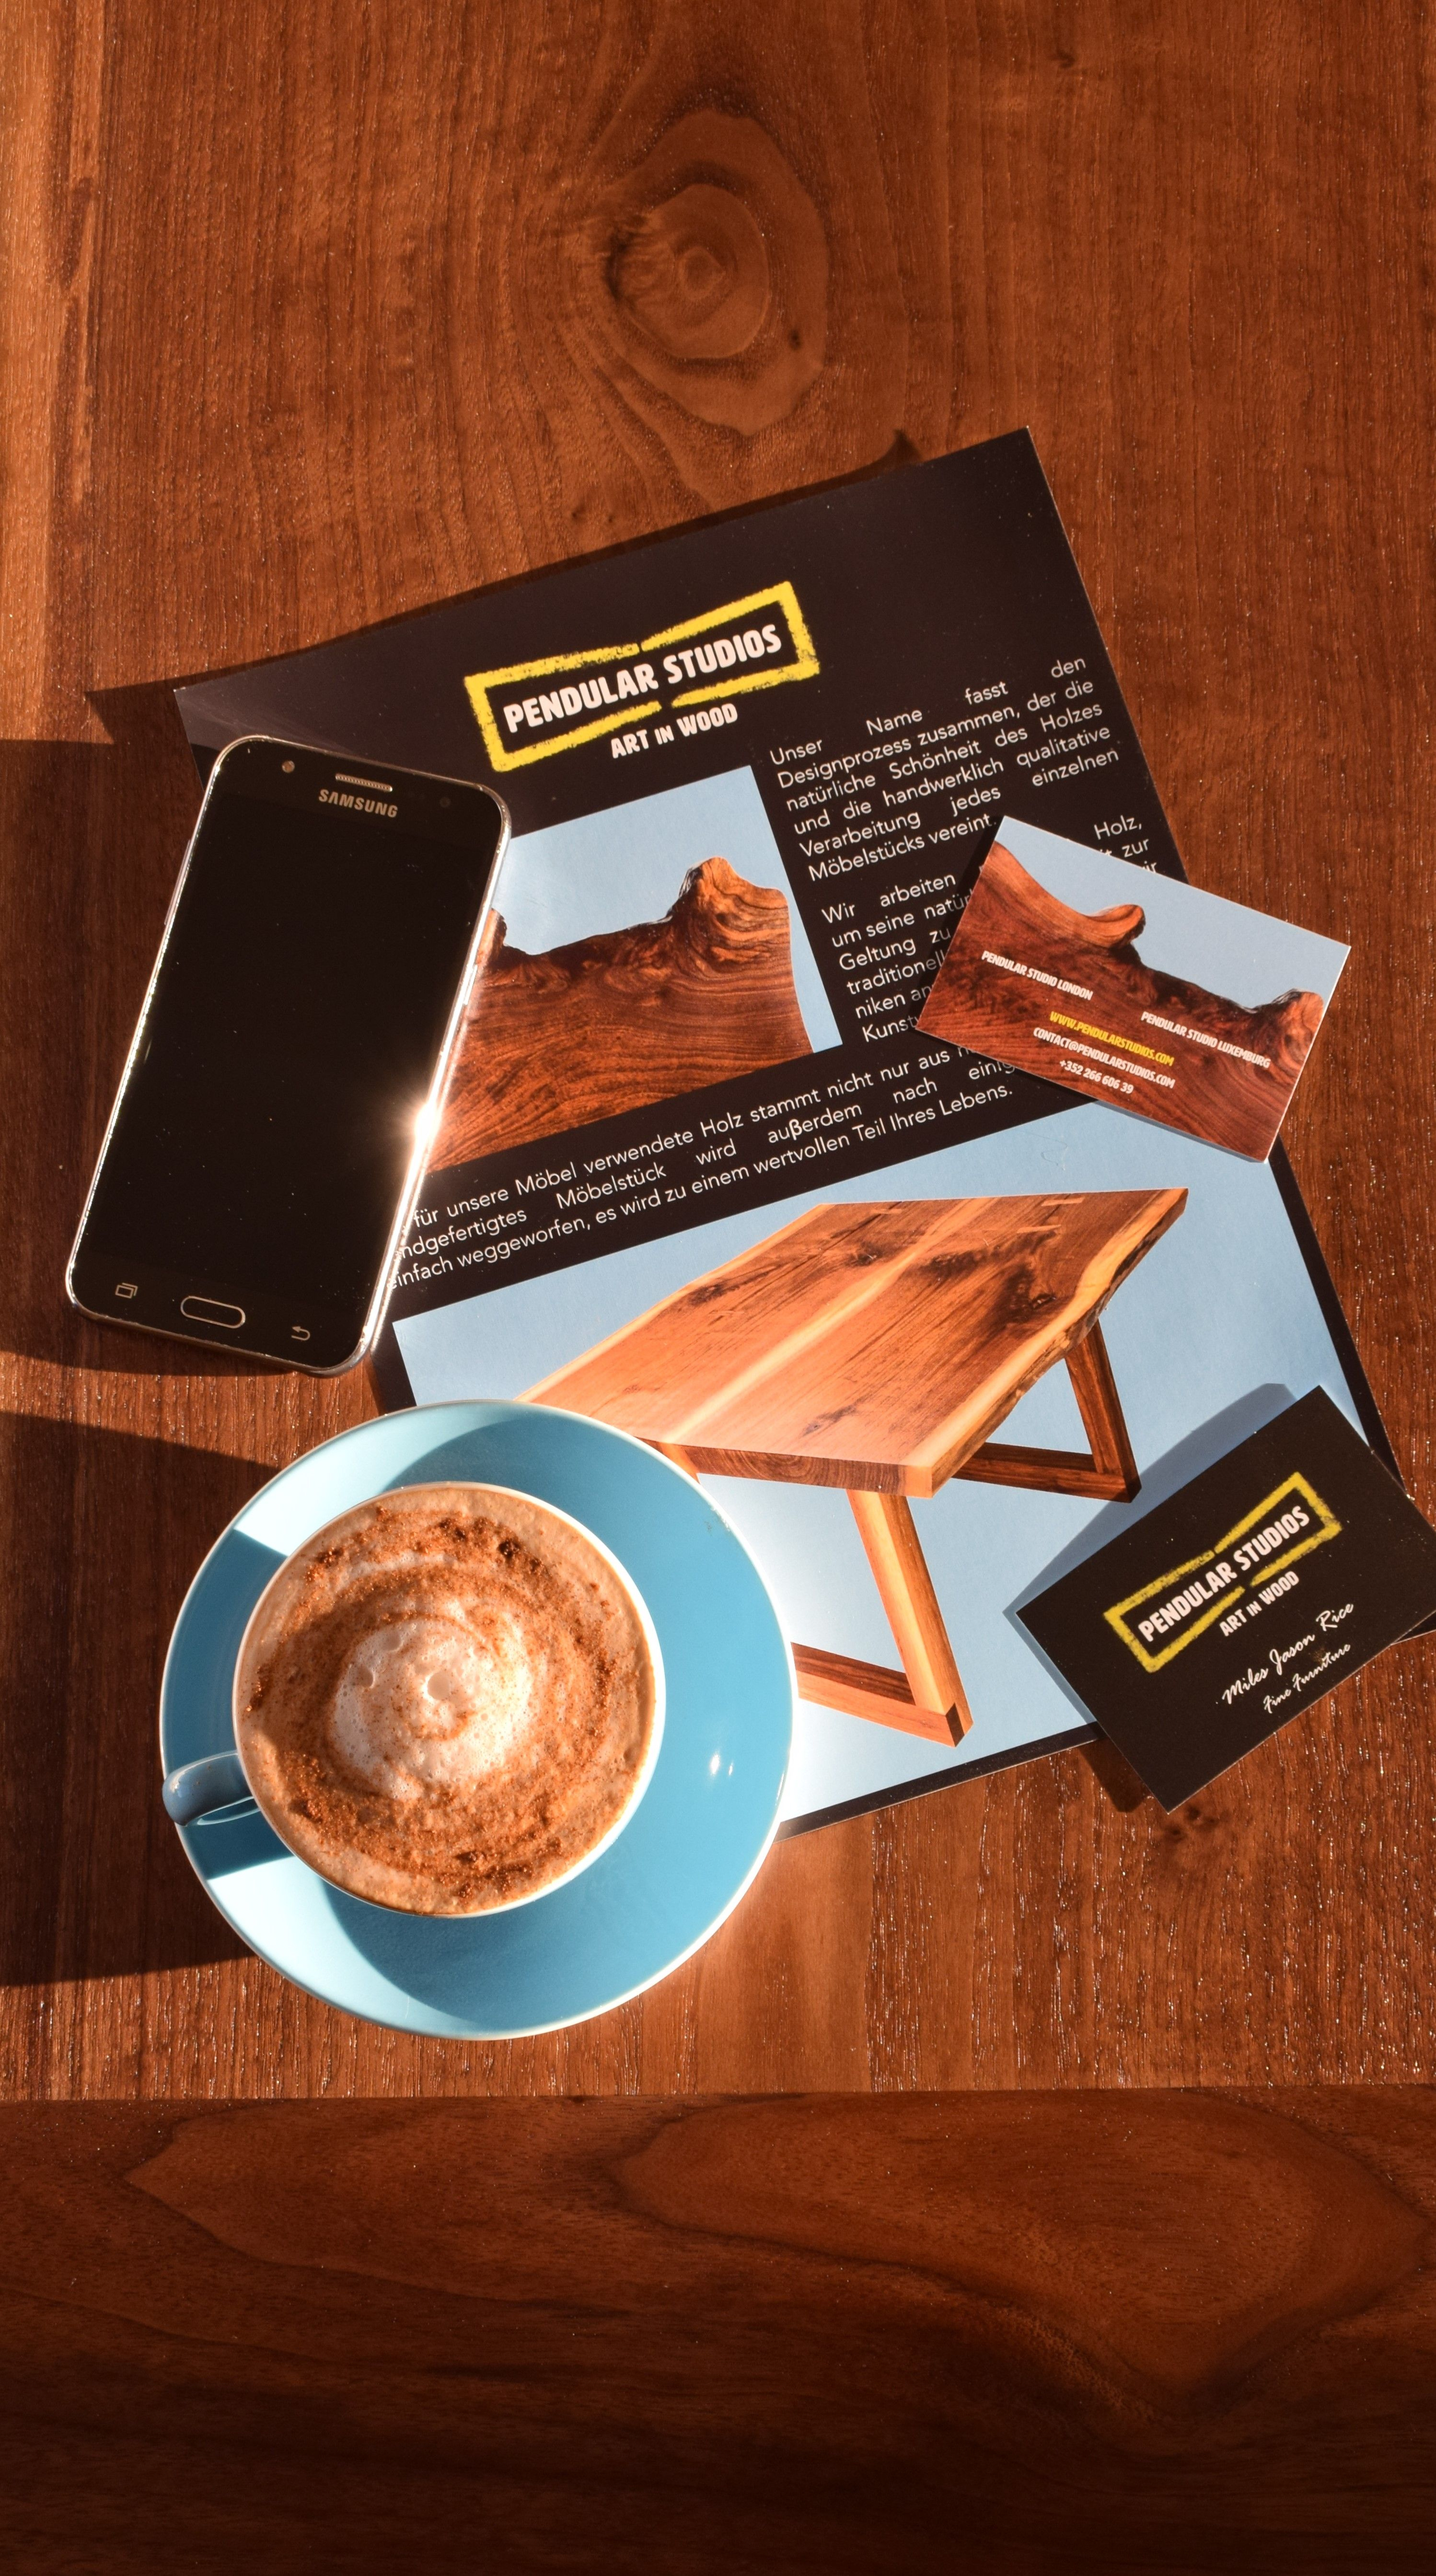 New Marketing Materials Just Arrived Having A Coffee Break On Our